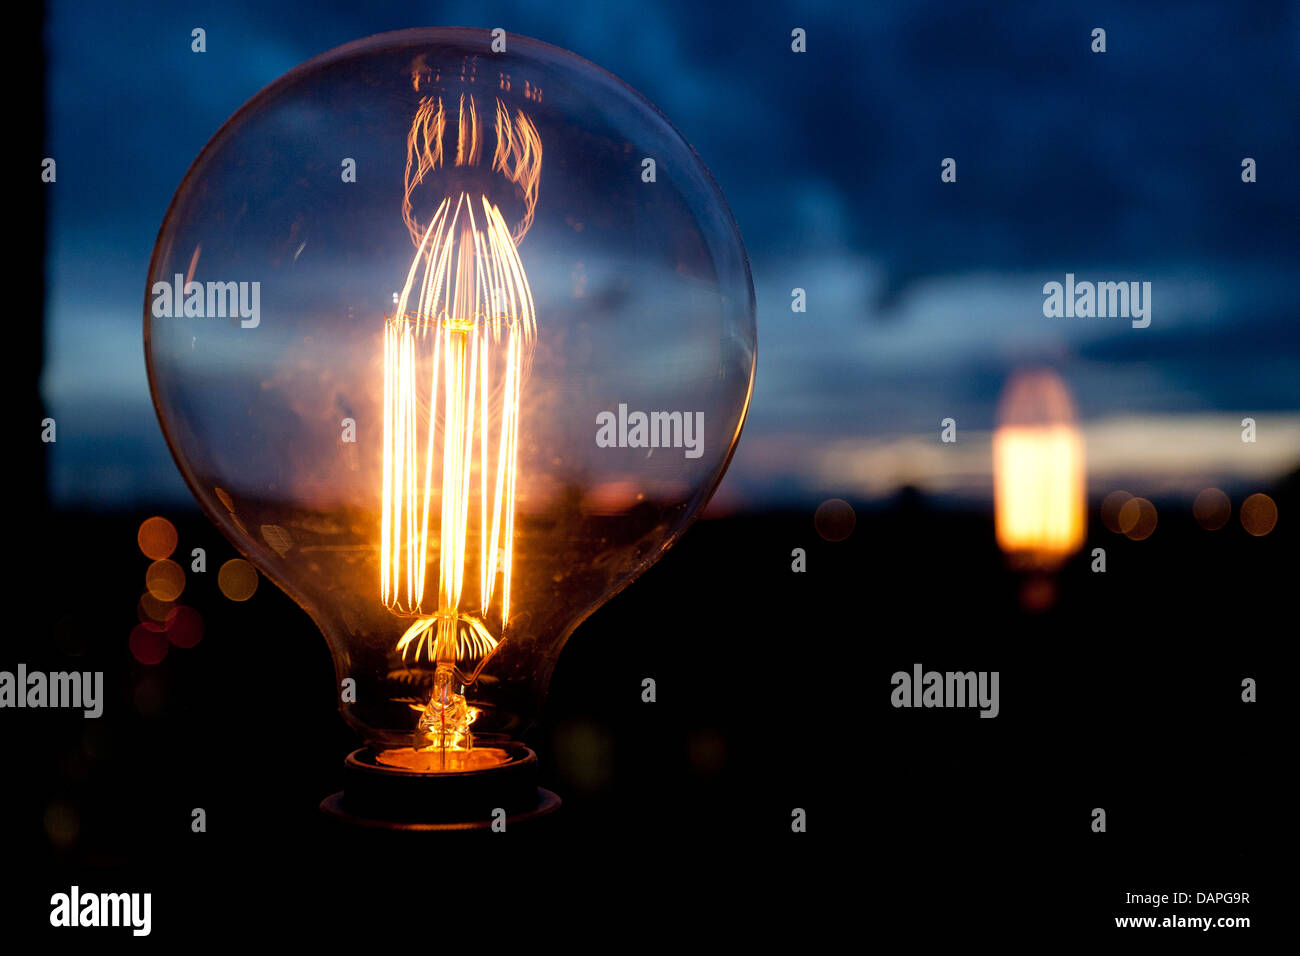 Close up of round bulb with nice filaments, sunset and reflections of light in background, landscape. - Stock Image